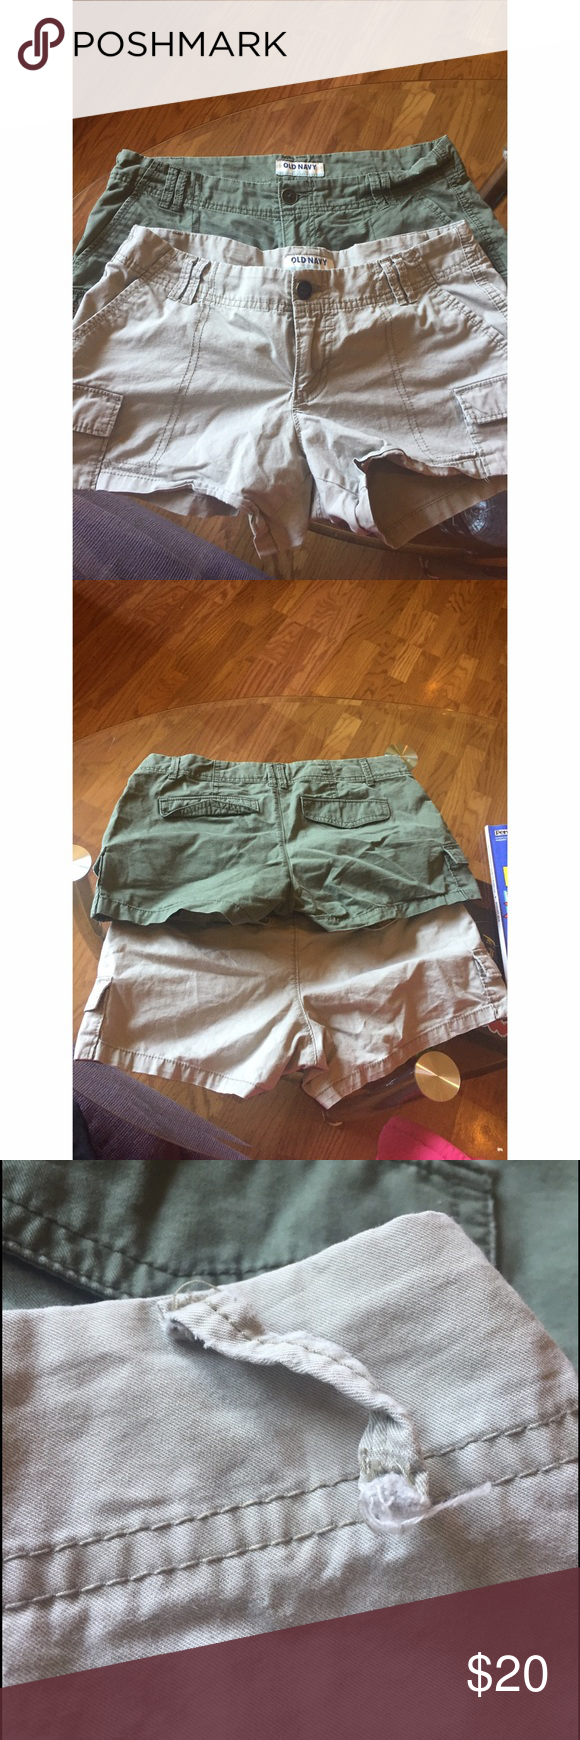 Two pairs of cargo style women's shorts. Worn only a few times. No known blemishes on the olive colored shorts. One belt loop on the khaki shorts is broken (picture attached). Old Navy Shorts